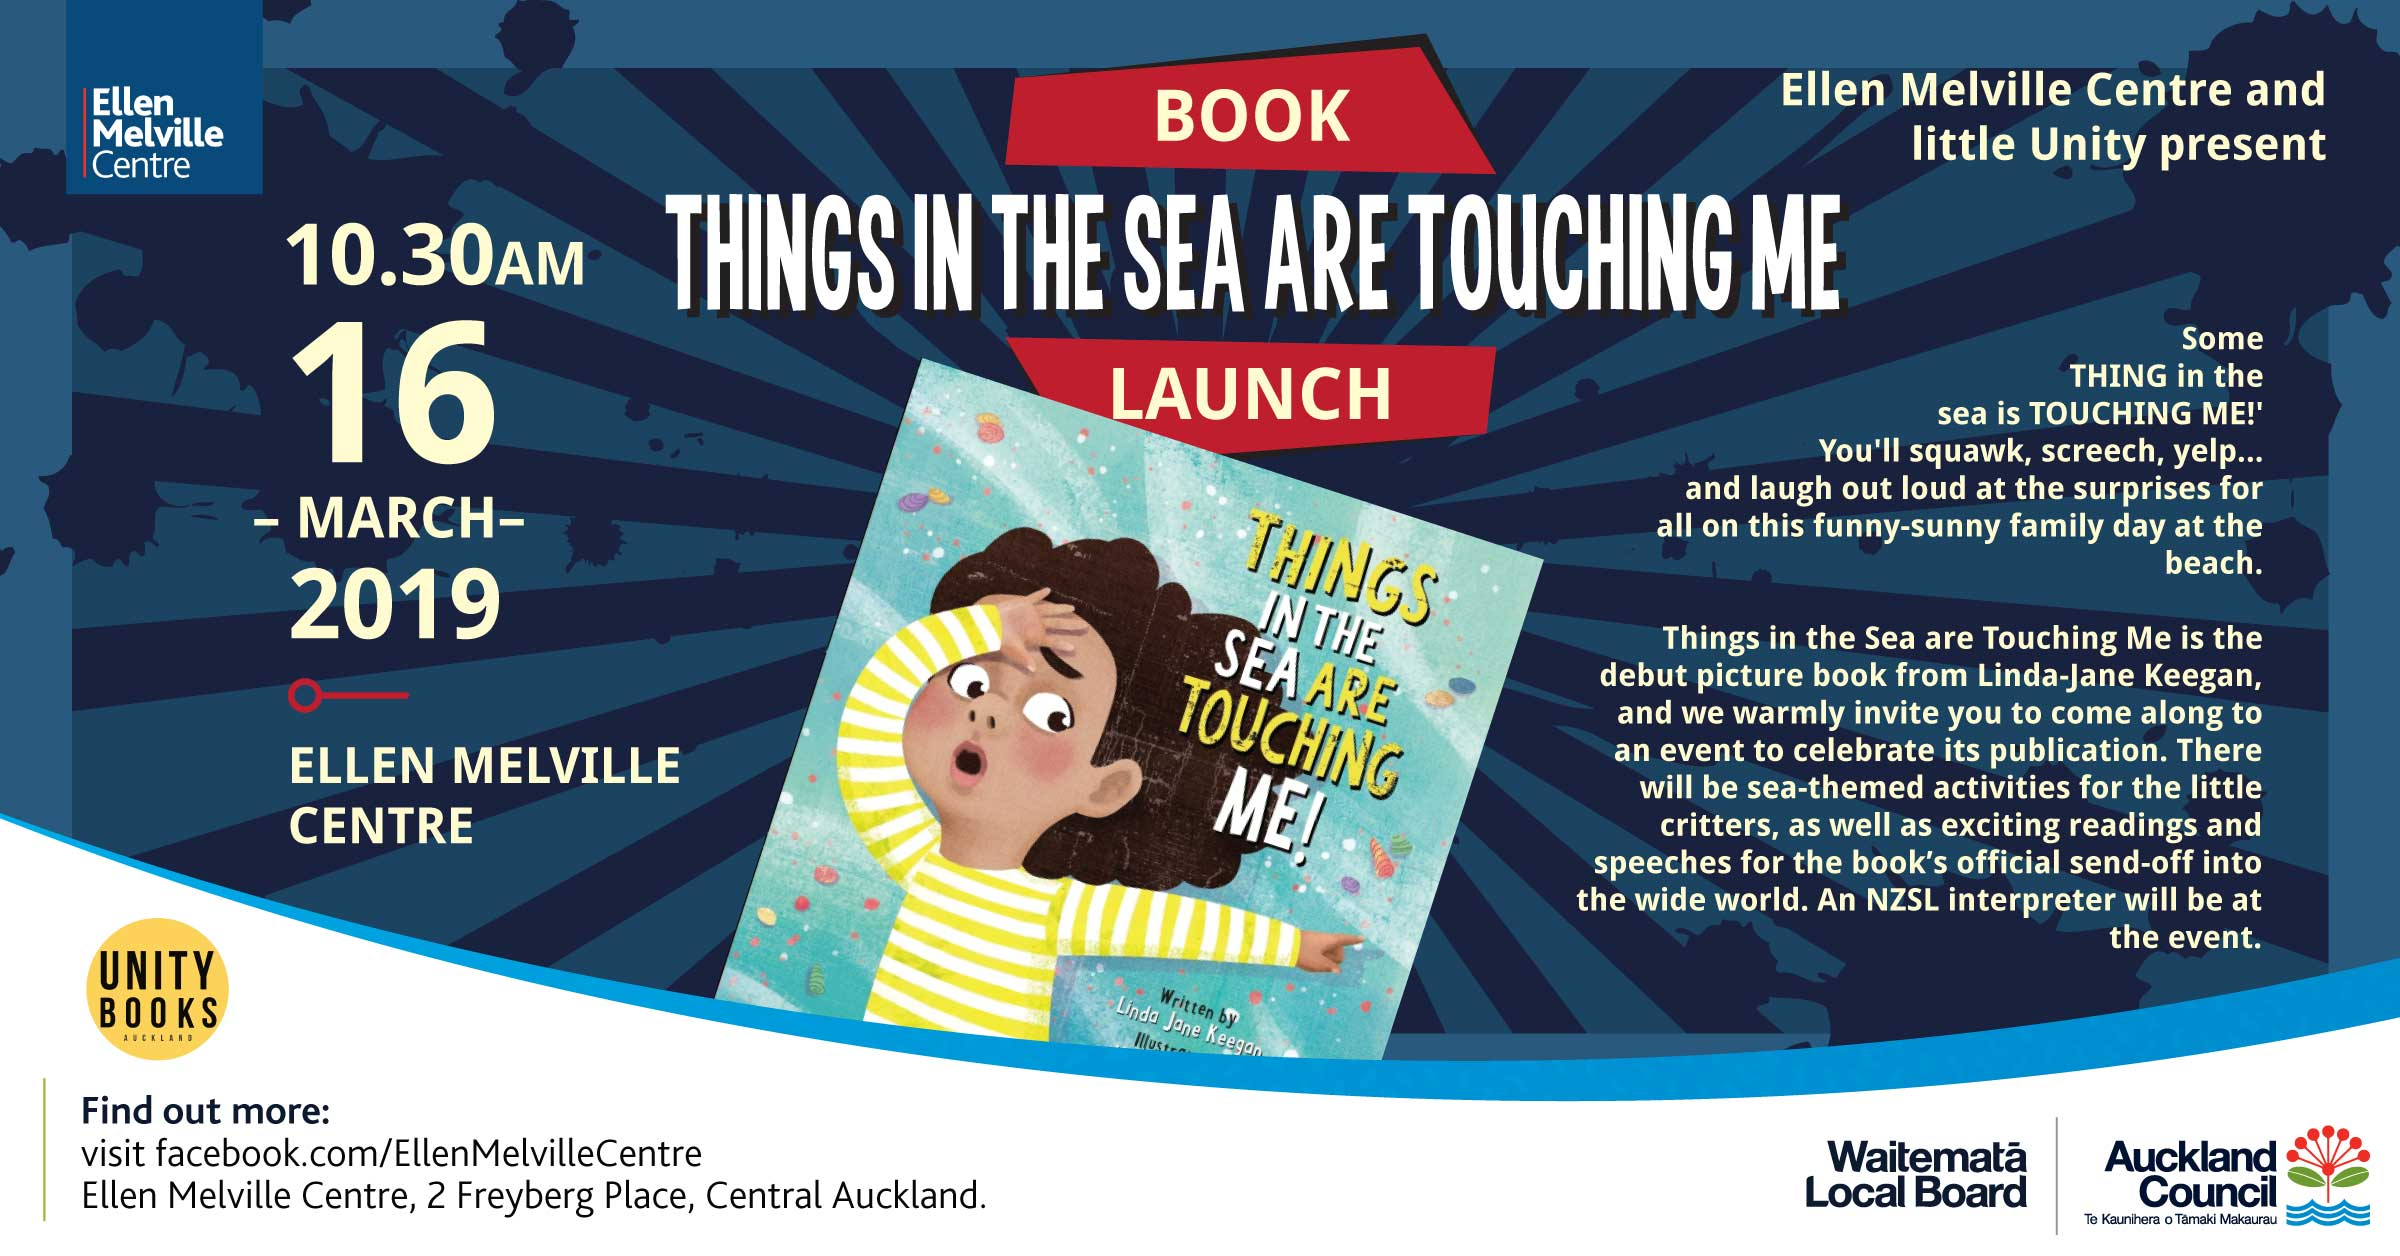 Things from the sea are touching me book launch